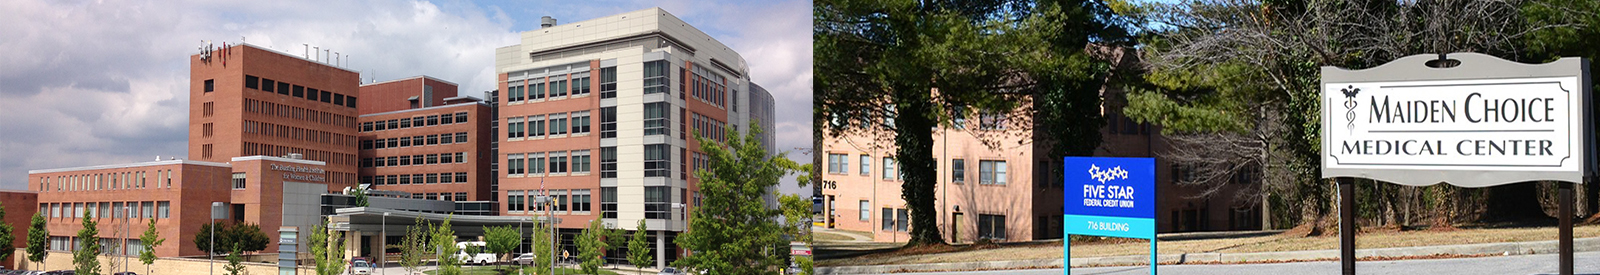 Our offices are in Saint Agnes Hospital and Catonsville.